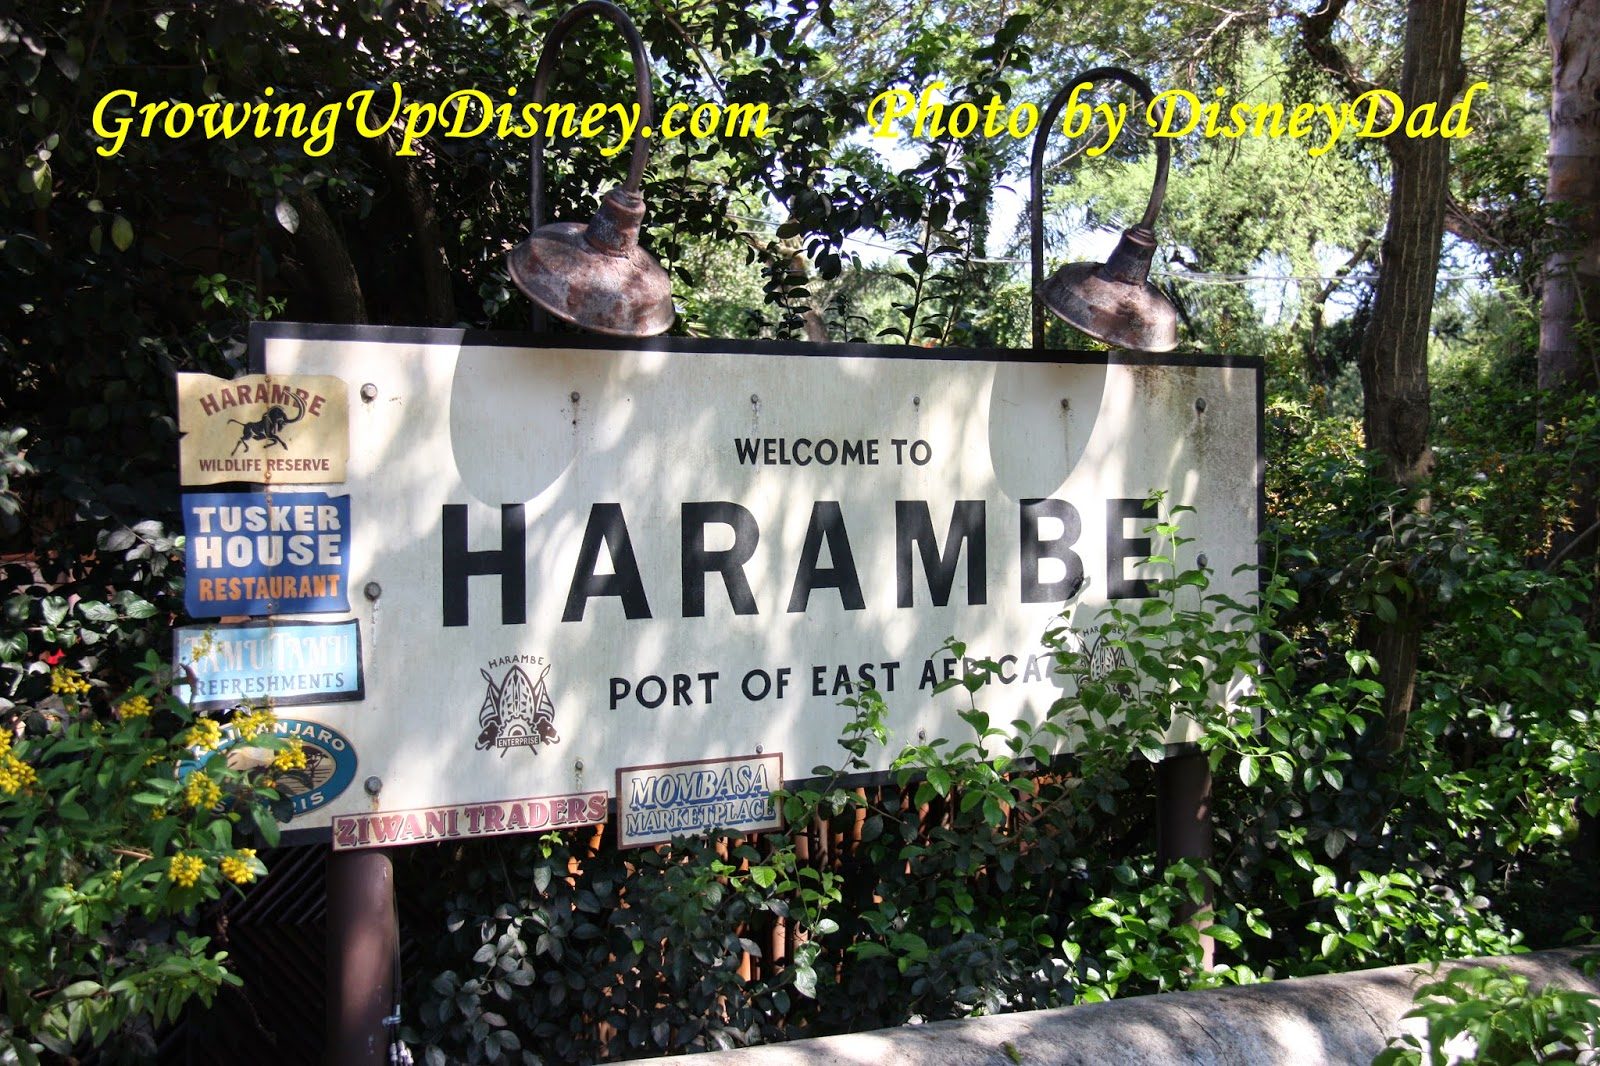 Harambe at Disney's Animal Kingdom